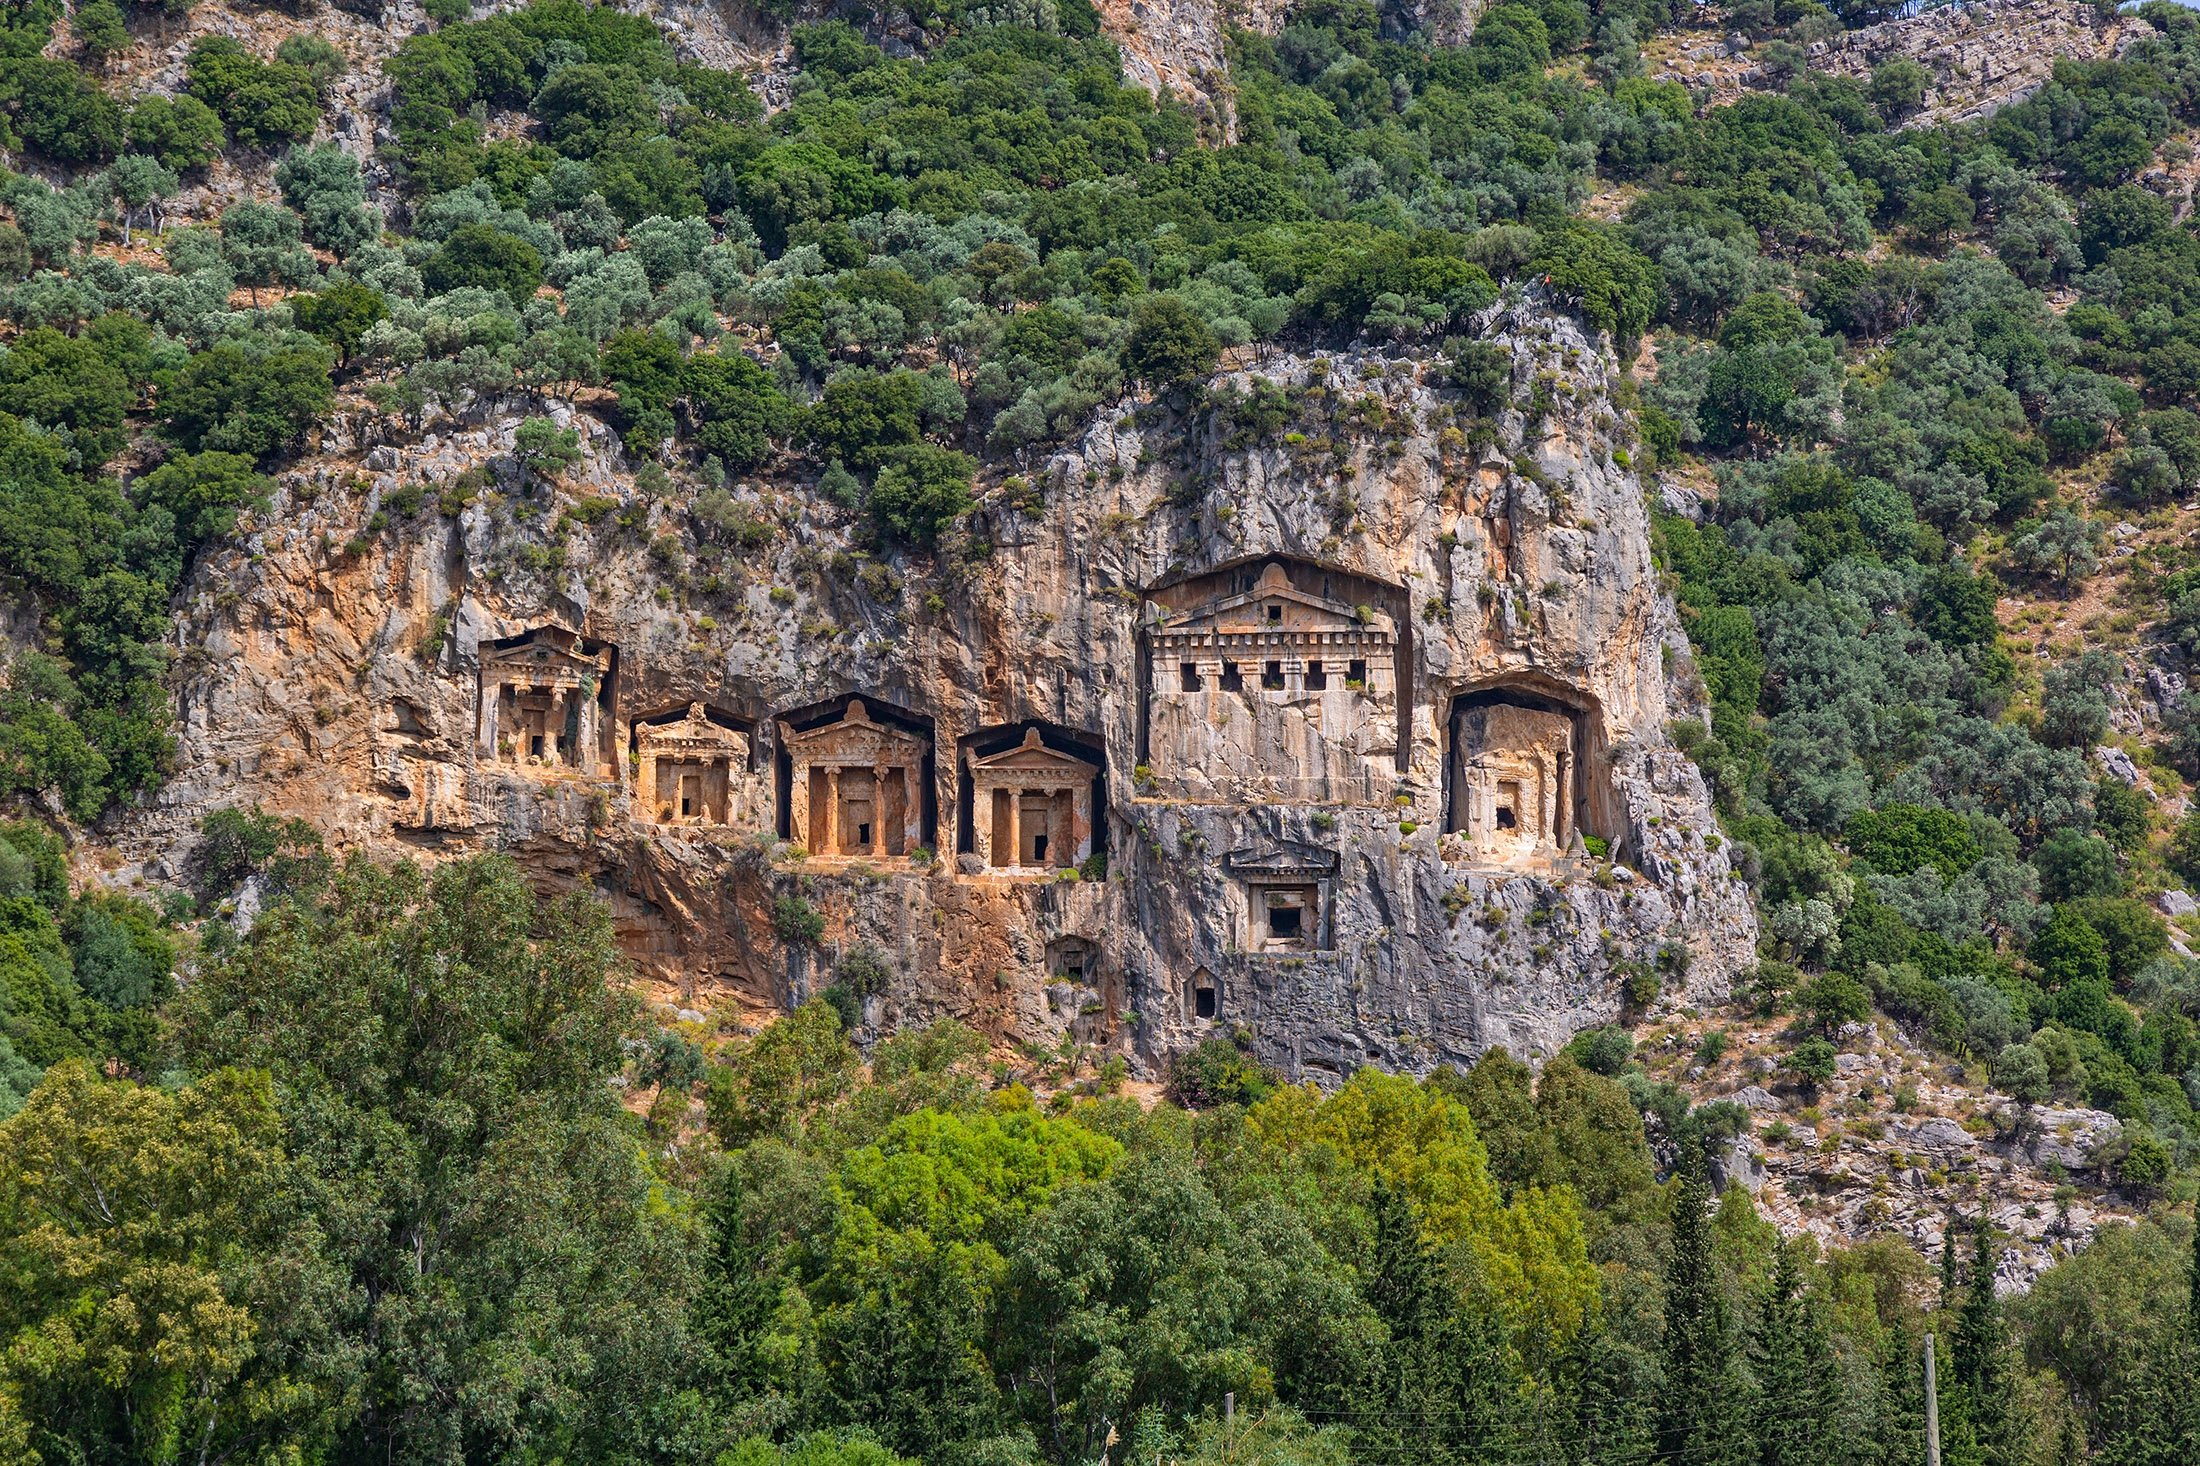 The rock tombs, one of the ancient architectural wonders of Turkey. (Shutterstock Photo)